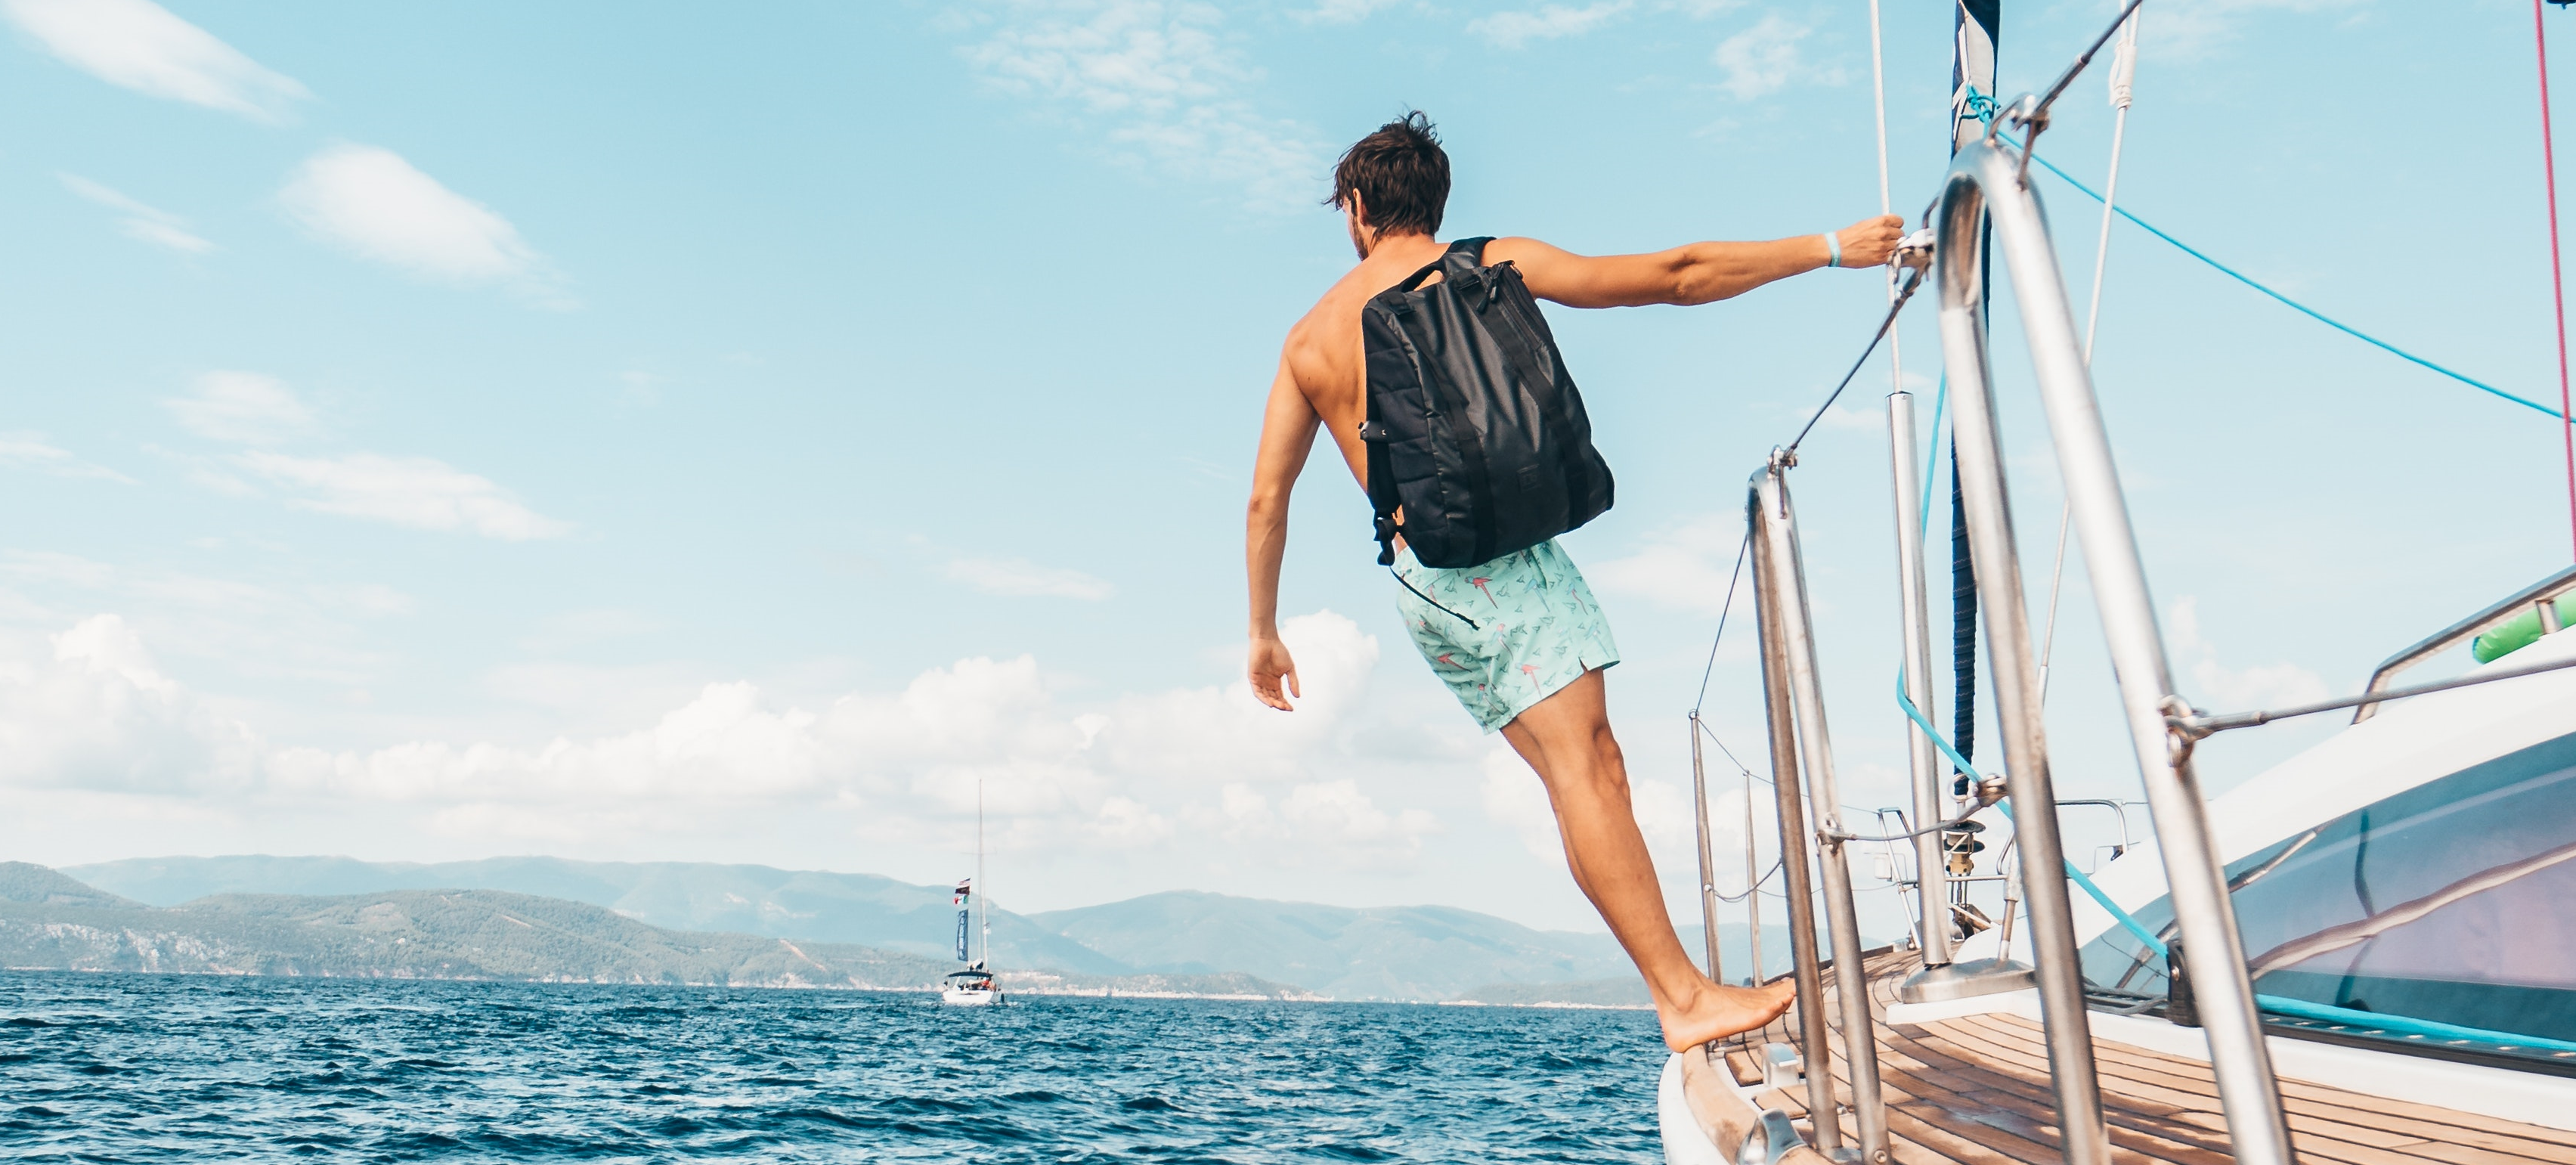 Why Boating might be the Best Way to Self-Distance this Summer